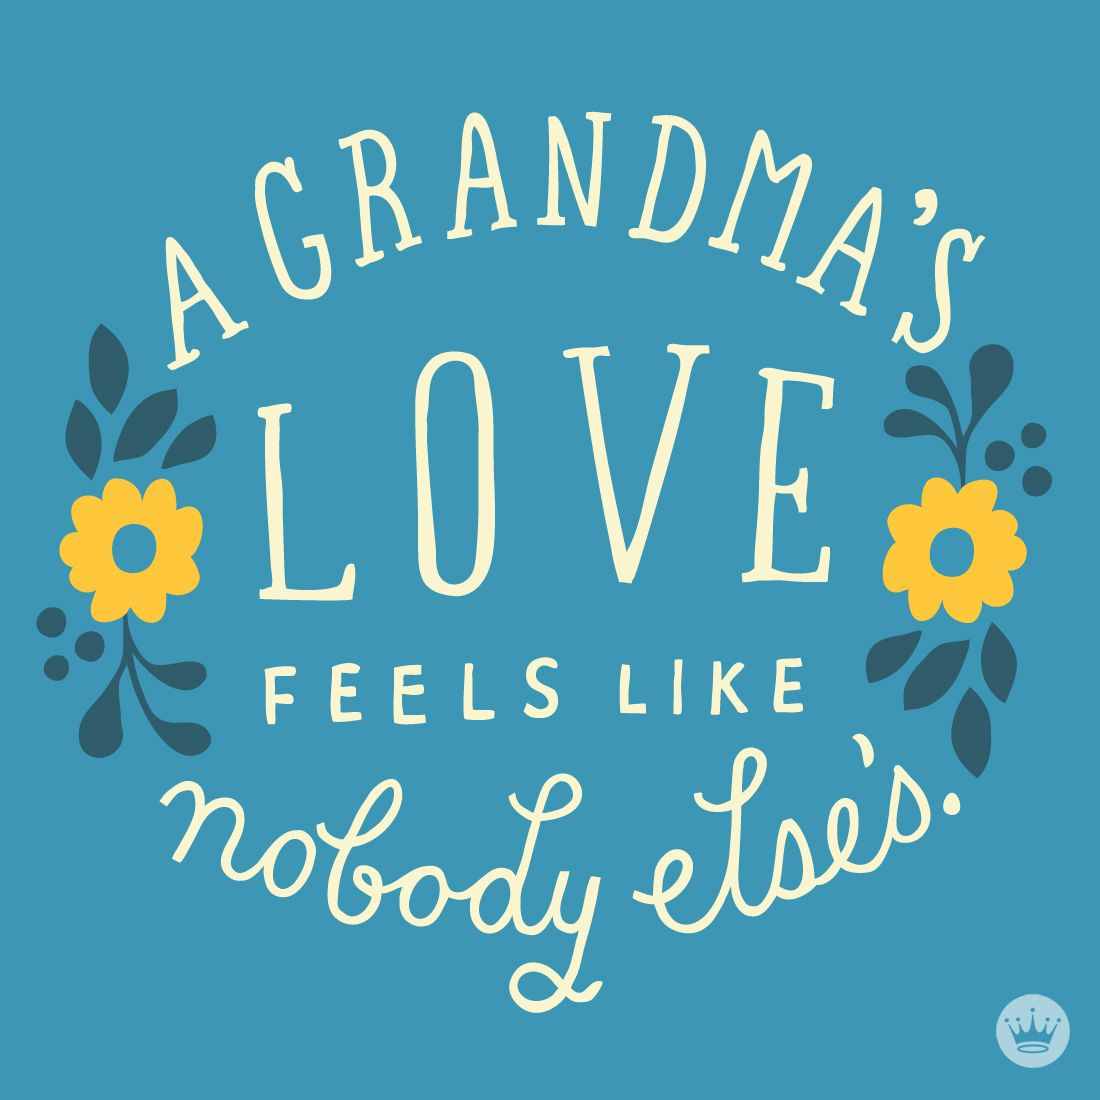 Grandma Quotes The perfect quote for a grandmother you love. | Words to Live By  Grandma Quotes